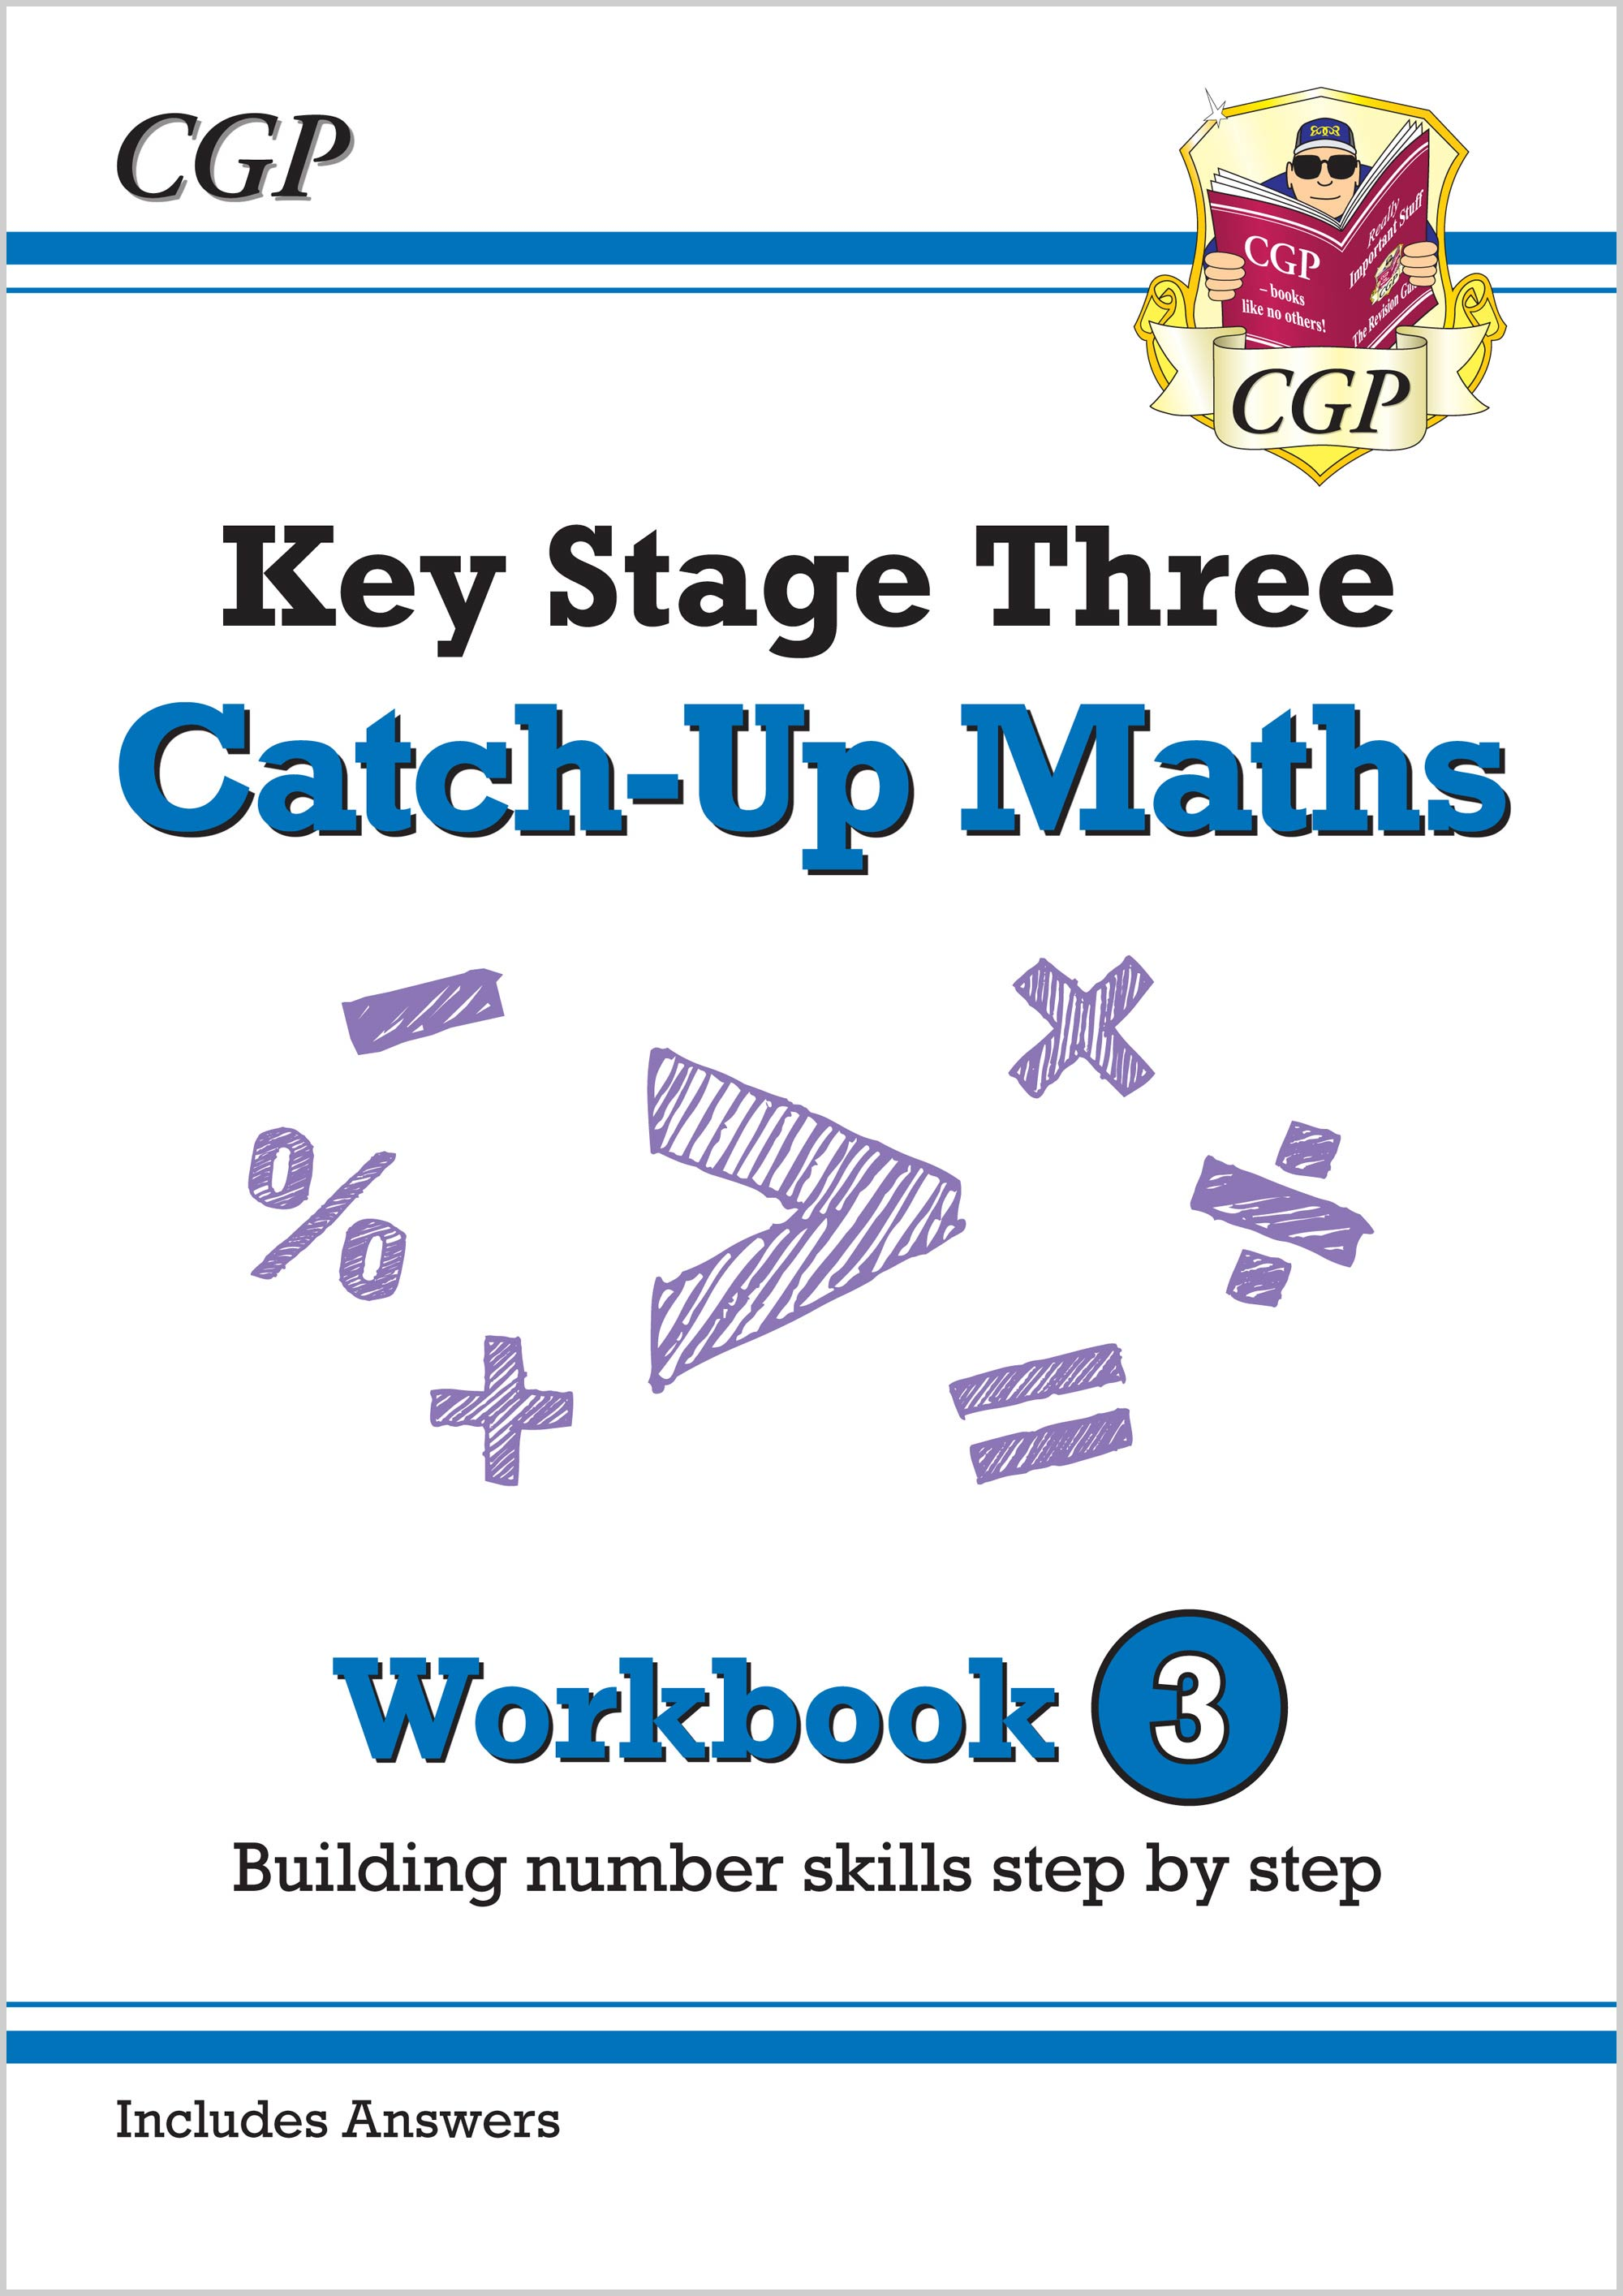 MBNW331 - New KS3 Maths Catch-Up Workbook 3 (with Answers)